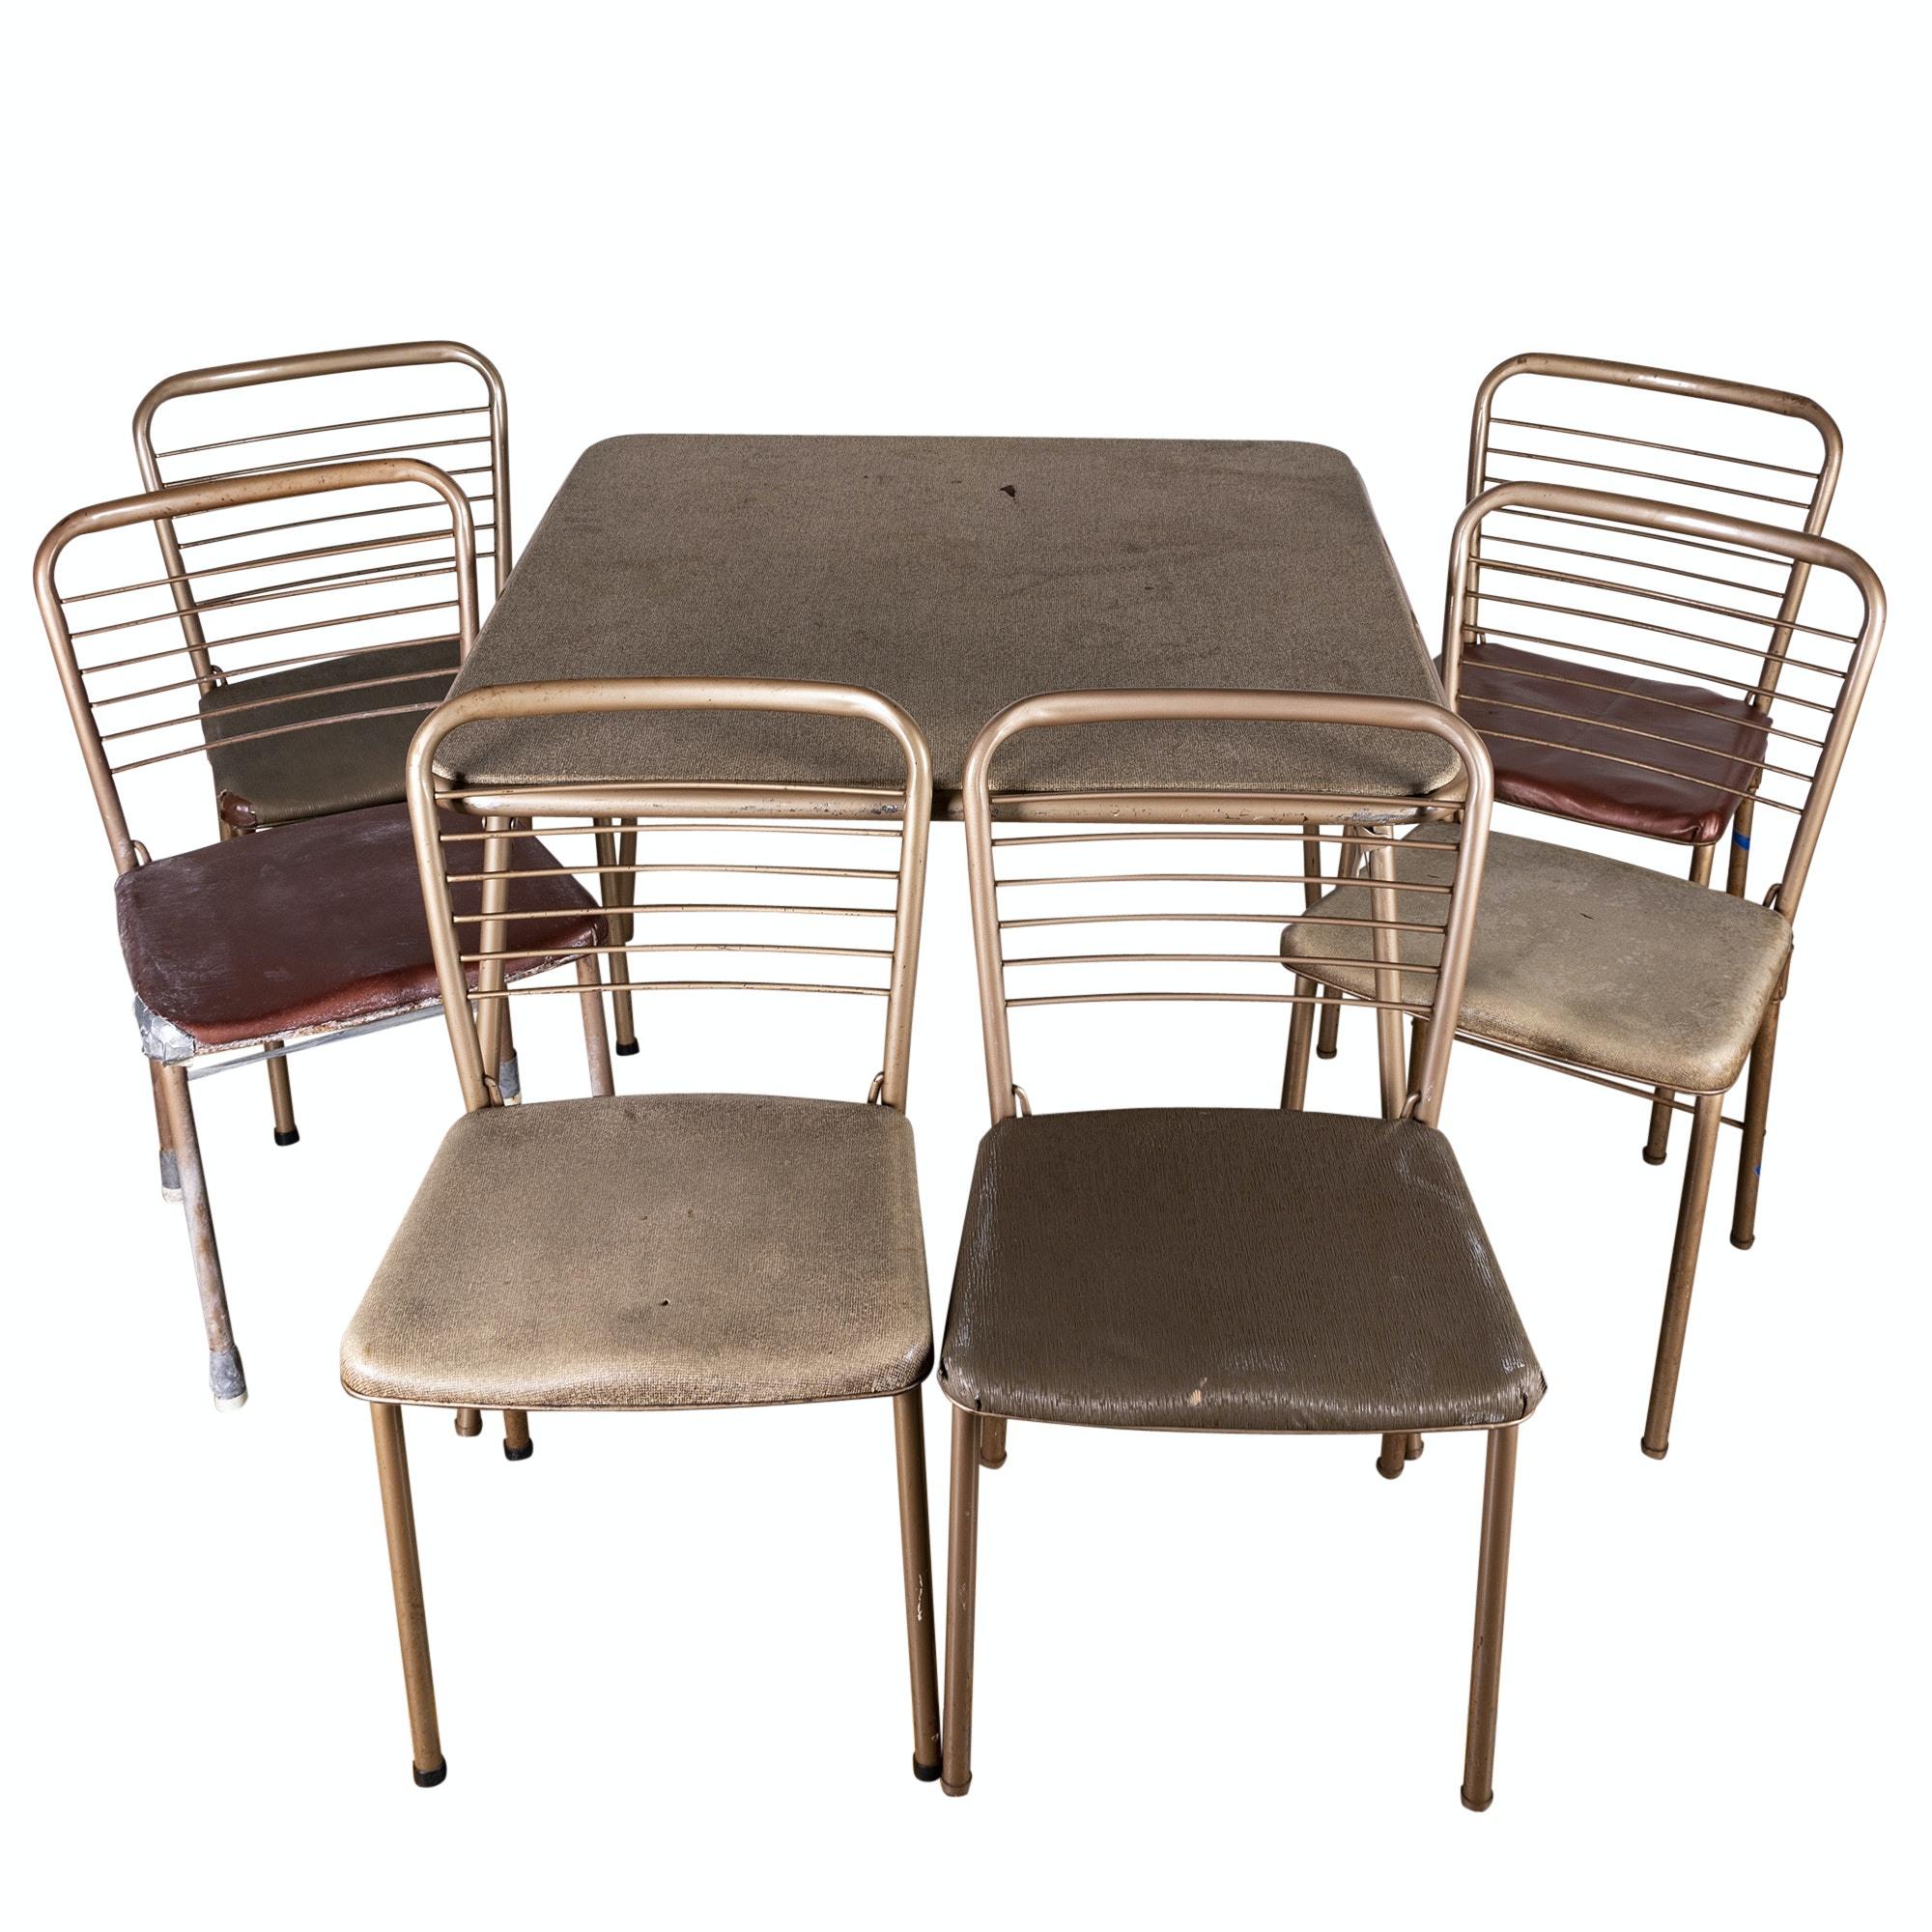 Mid Century Modern Folding Card Table and Six Chairs by Cosco, Mid-20th Century